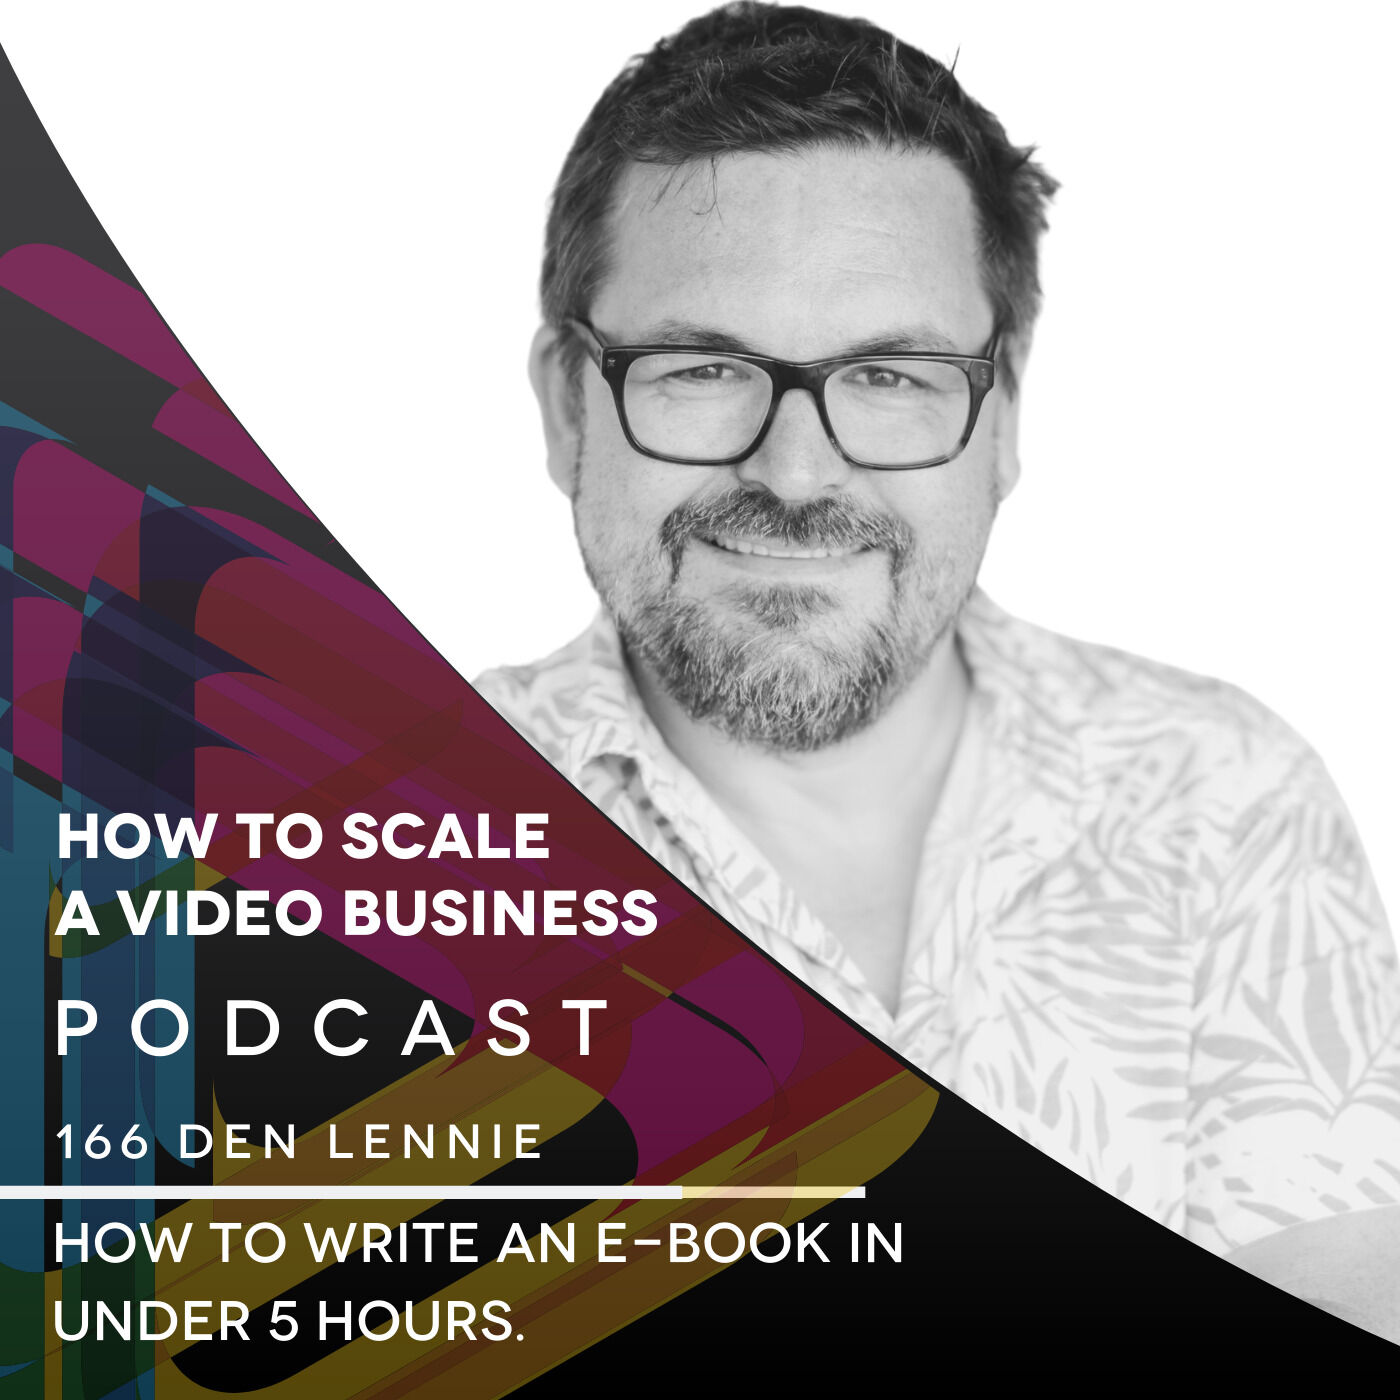 How to write an e-book in under 5 hours. EP #166 - Den Lennie